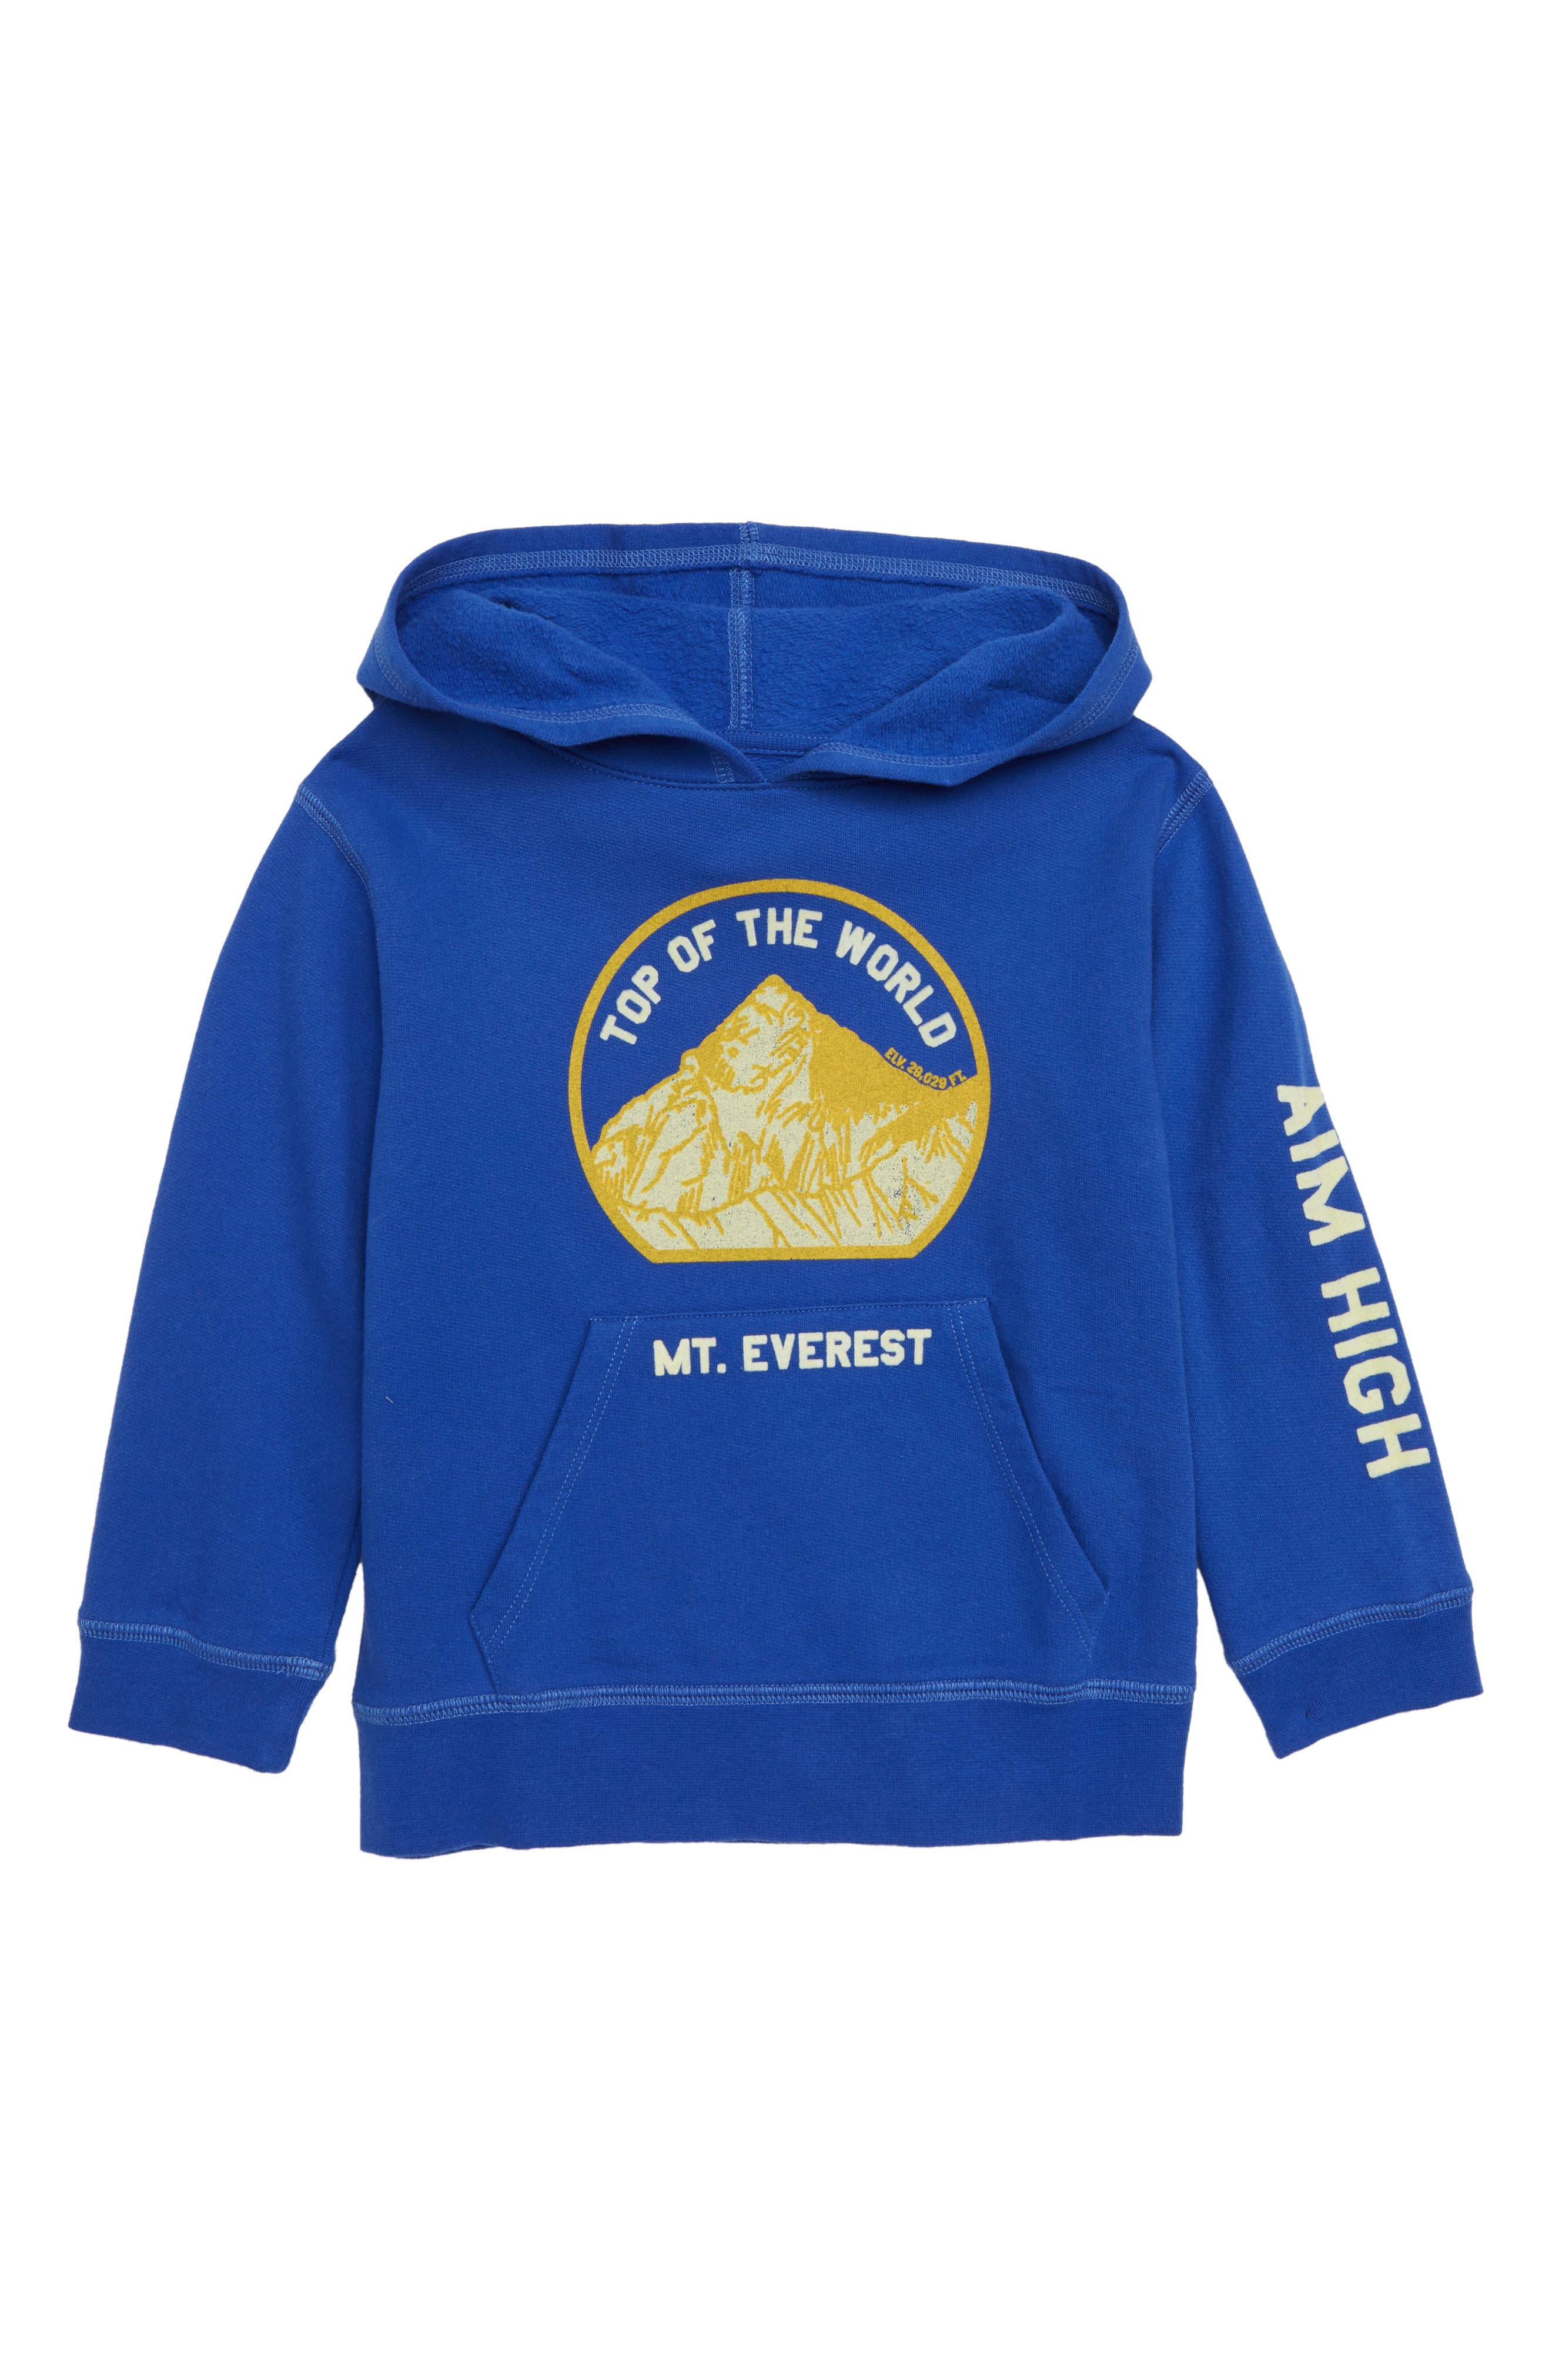 Aim High Hoodie,                             Main thumbnail 1, color,                             BLUE